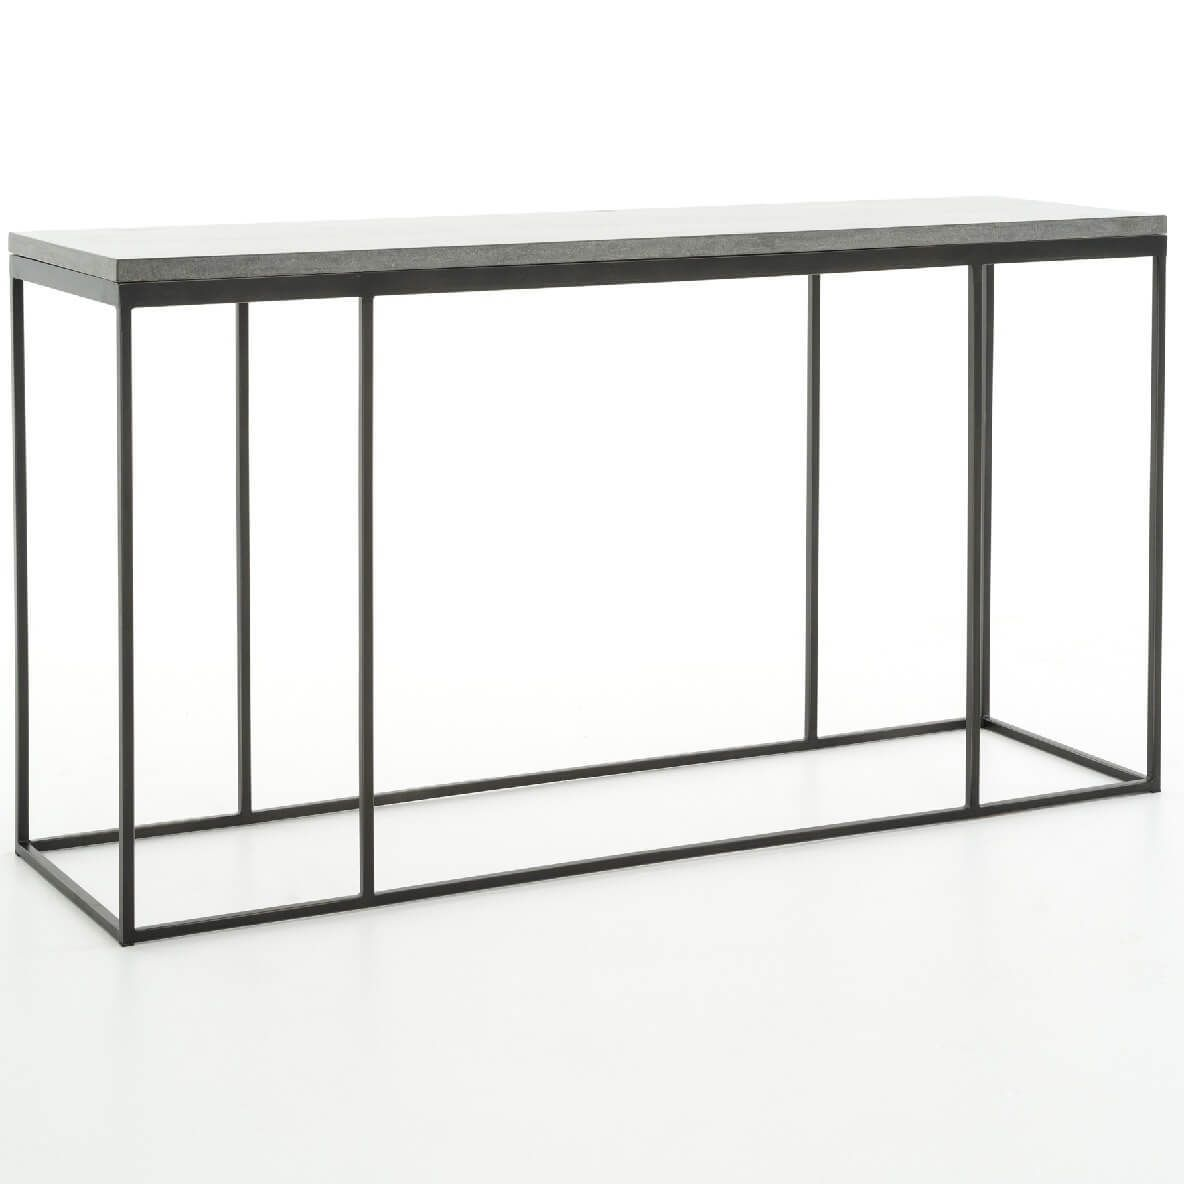 French Industrial Iron Bluestone Top Console Table French Industrial Industrial Style Furniture Industrial Irons